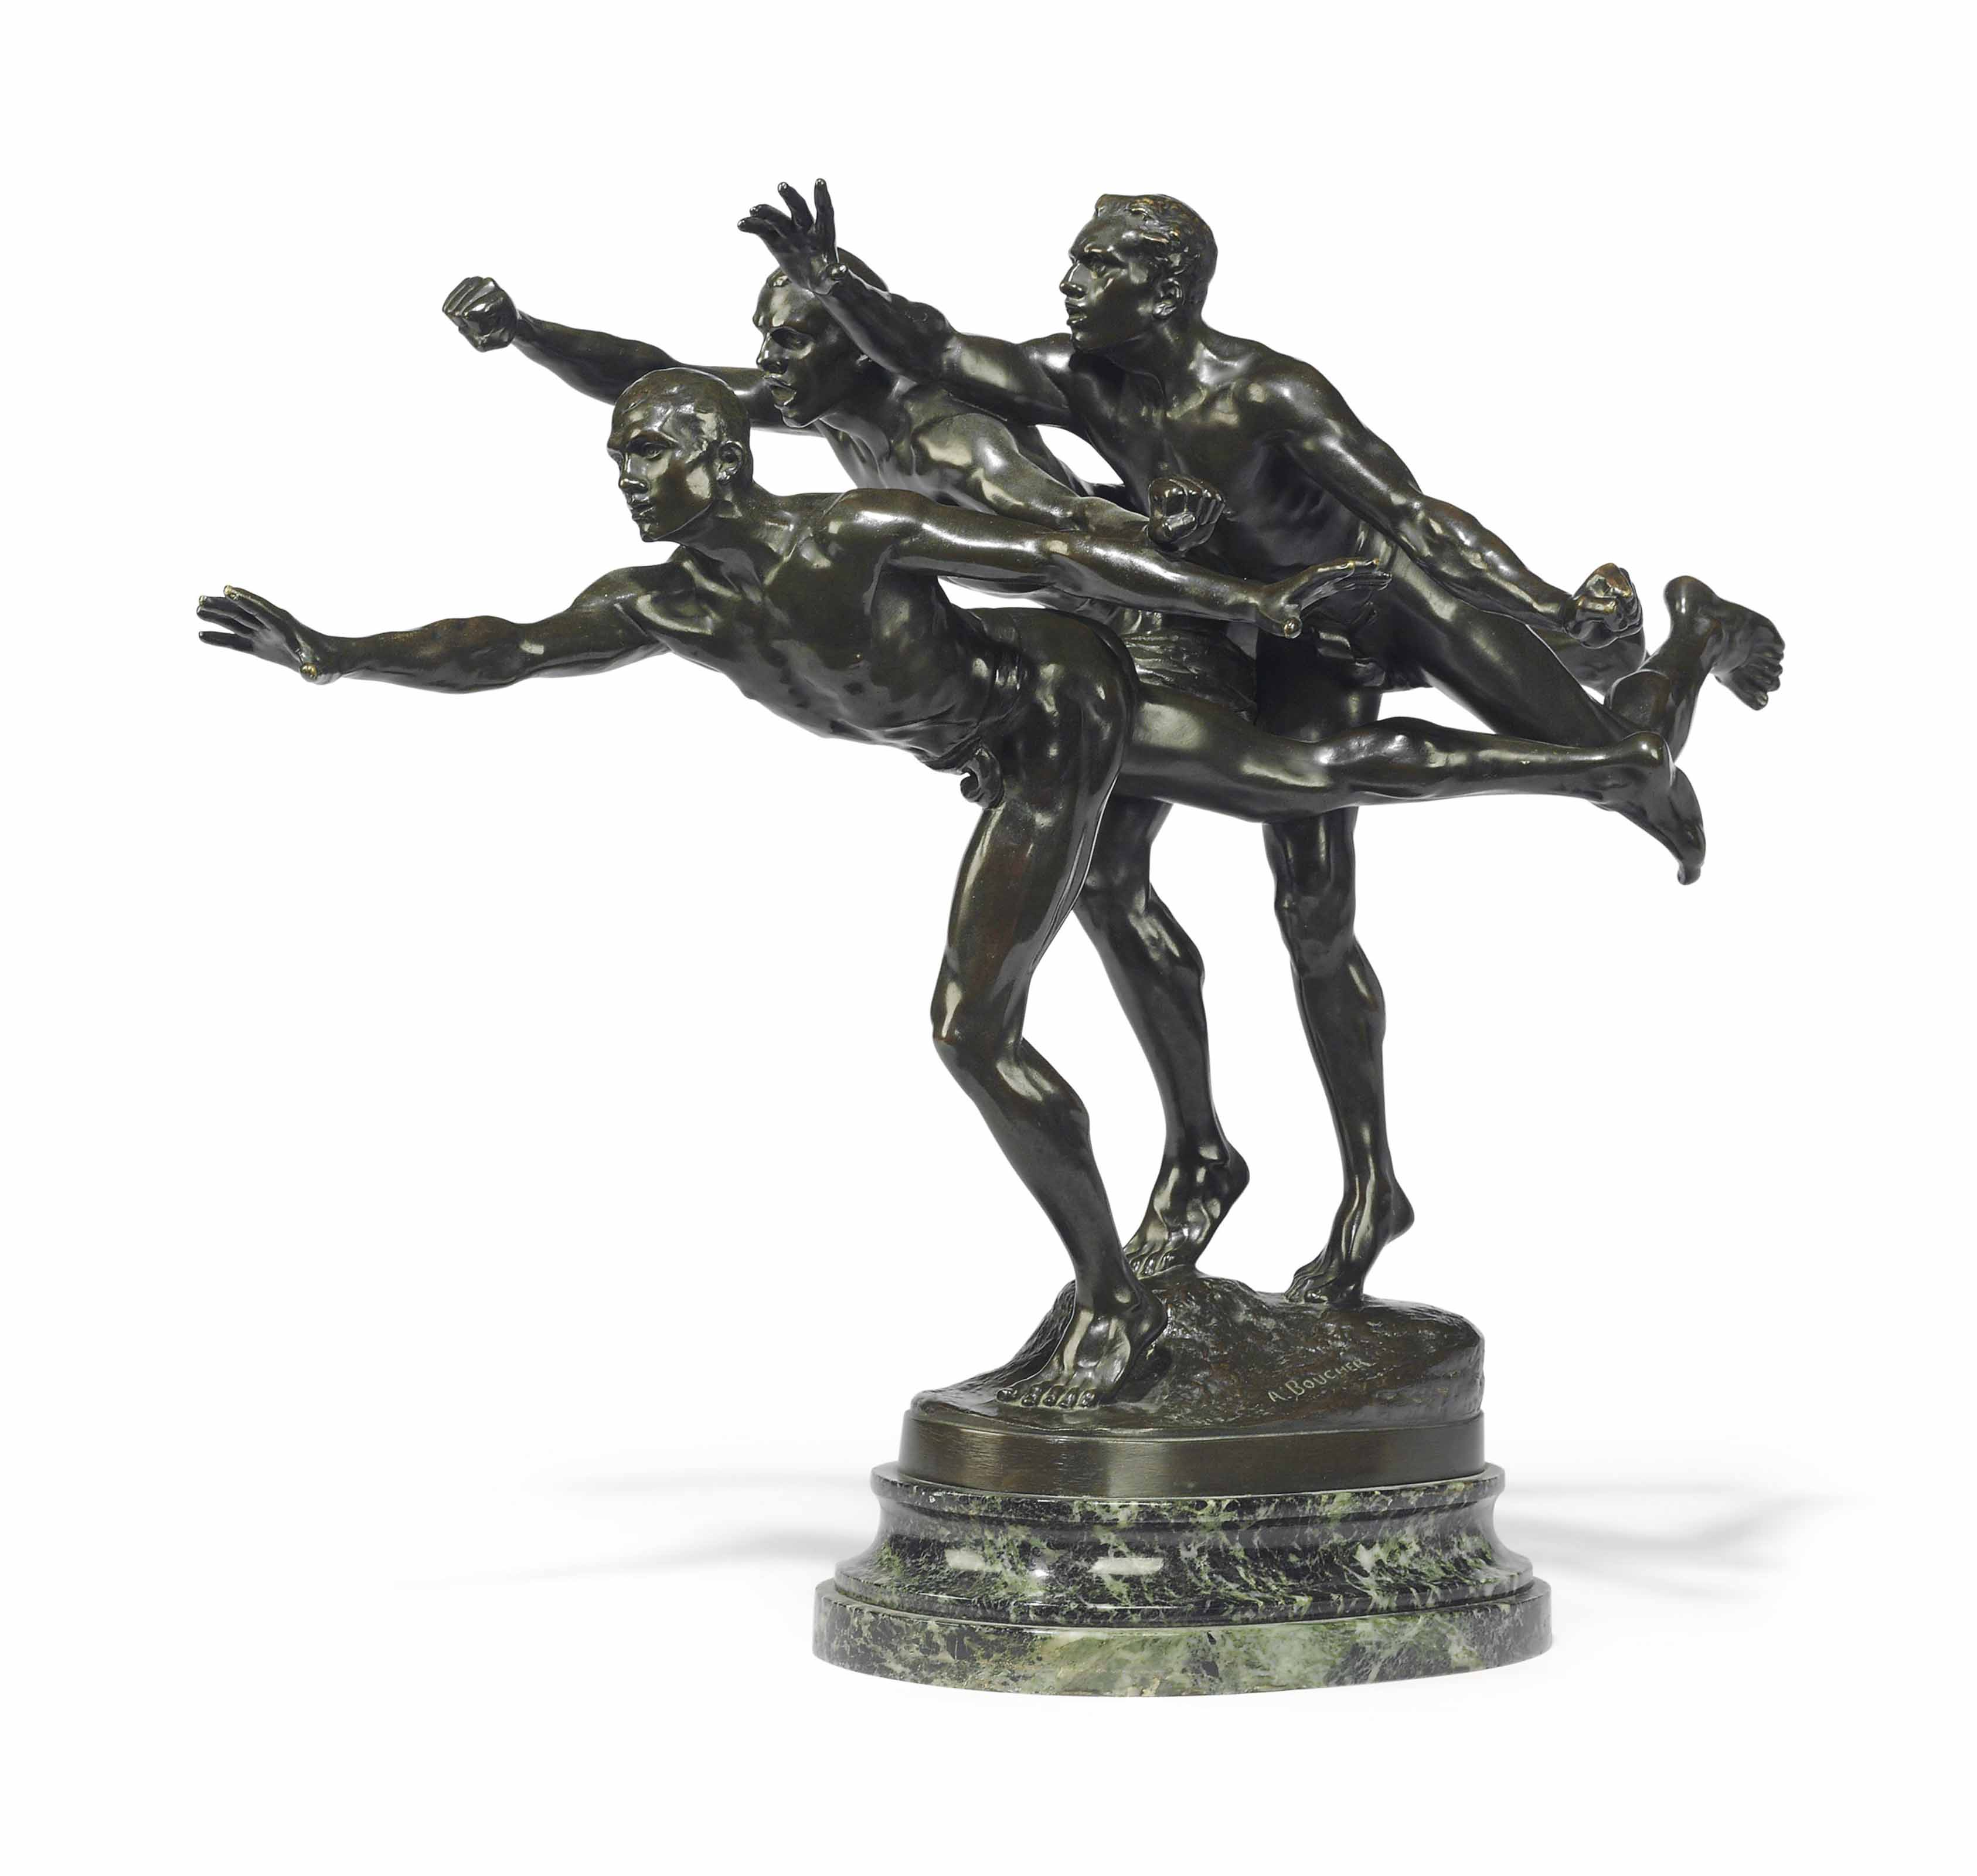 A FRENCH PATINATED-BRONZE FIGURAL GROUP ENTITLED 'AU BUT'